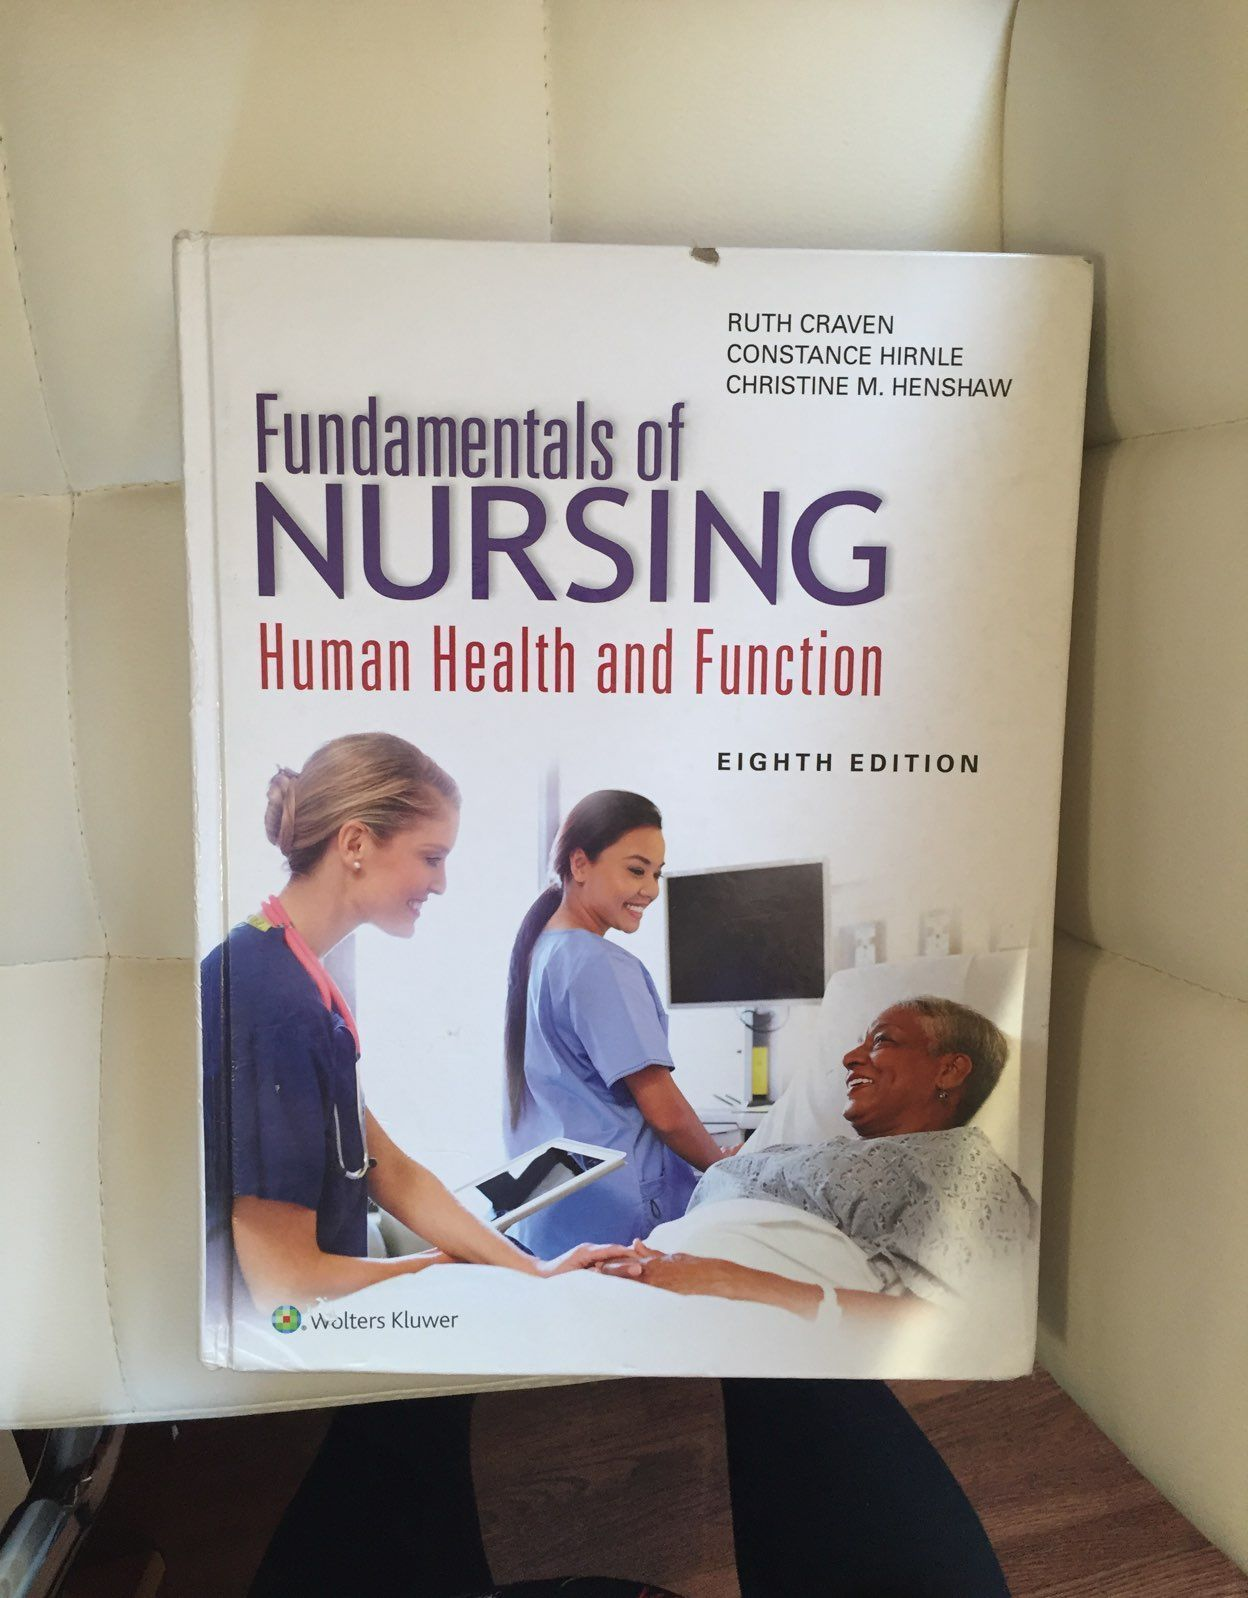 heyunrei - Ati fundamentals of nursing practice test